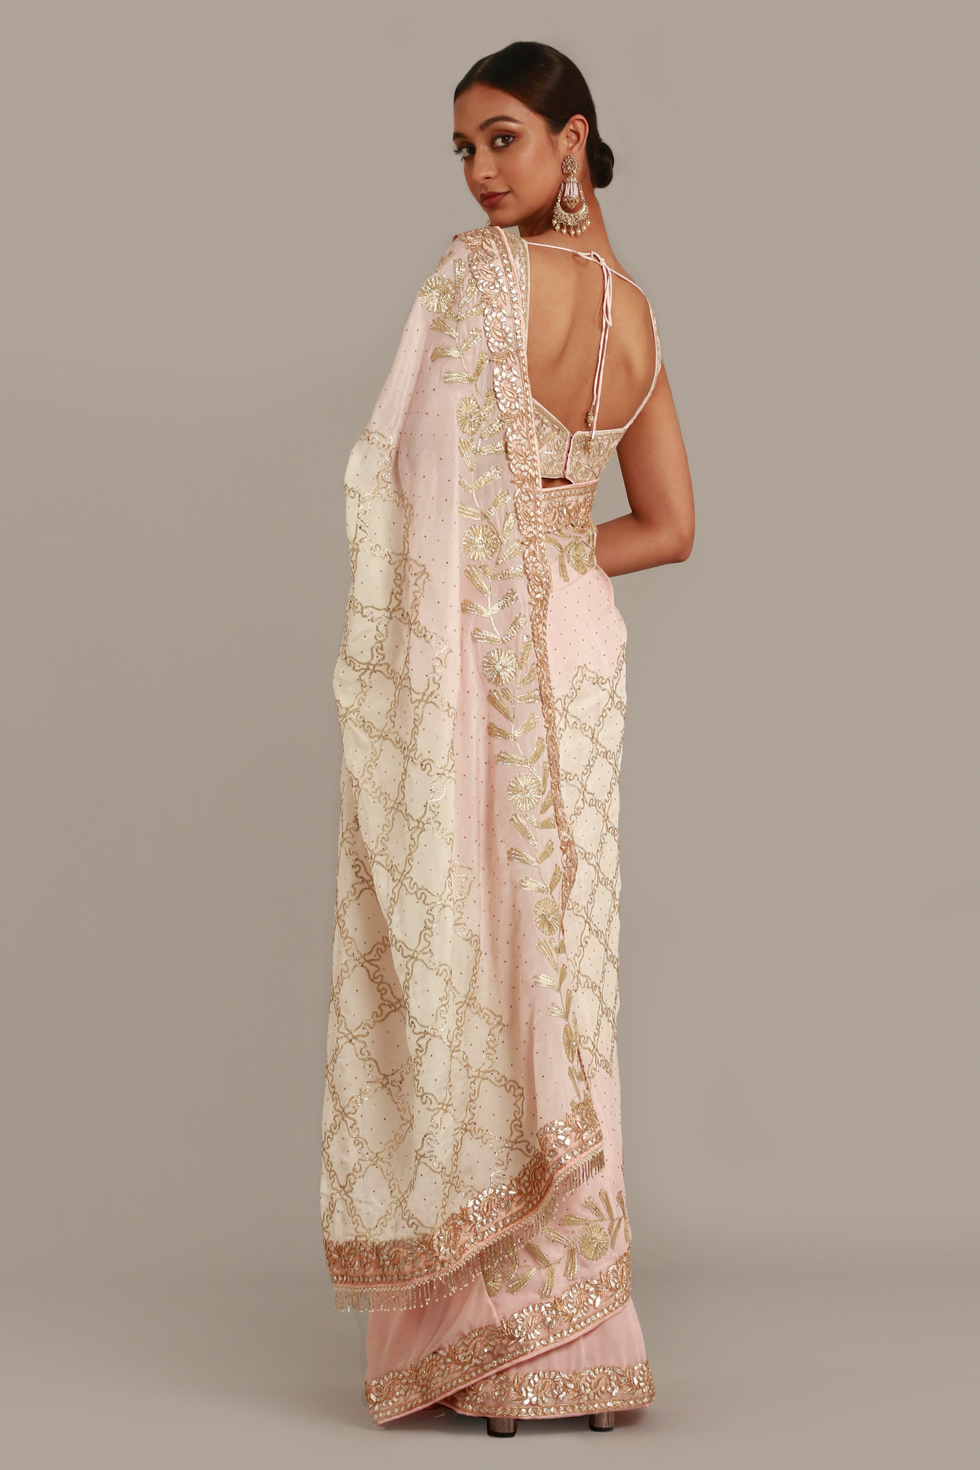 Rose pink classic saree with contrast ombré pallu with gota work, matching blouse and gold embellishments